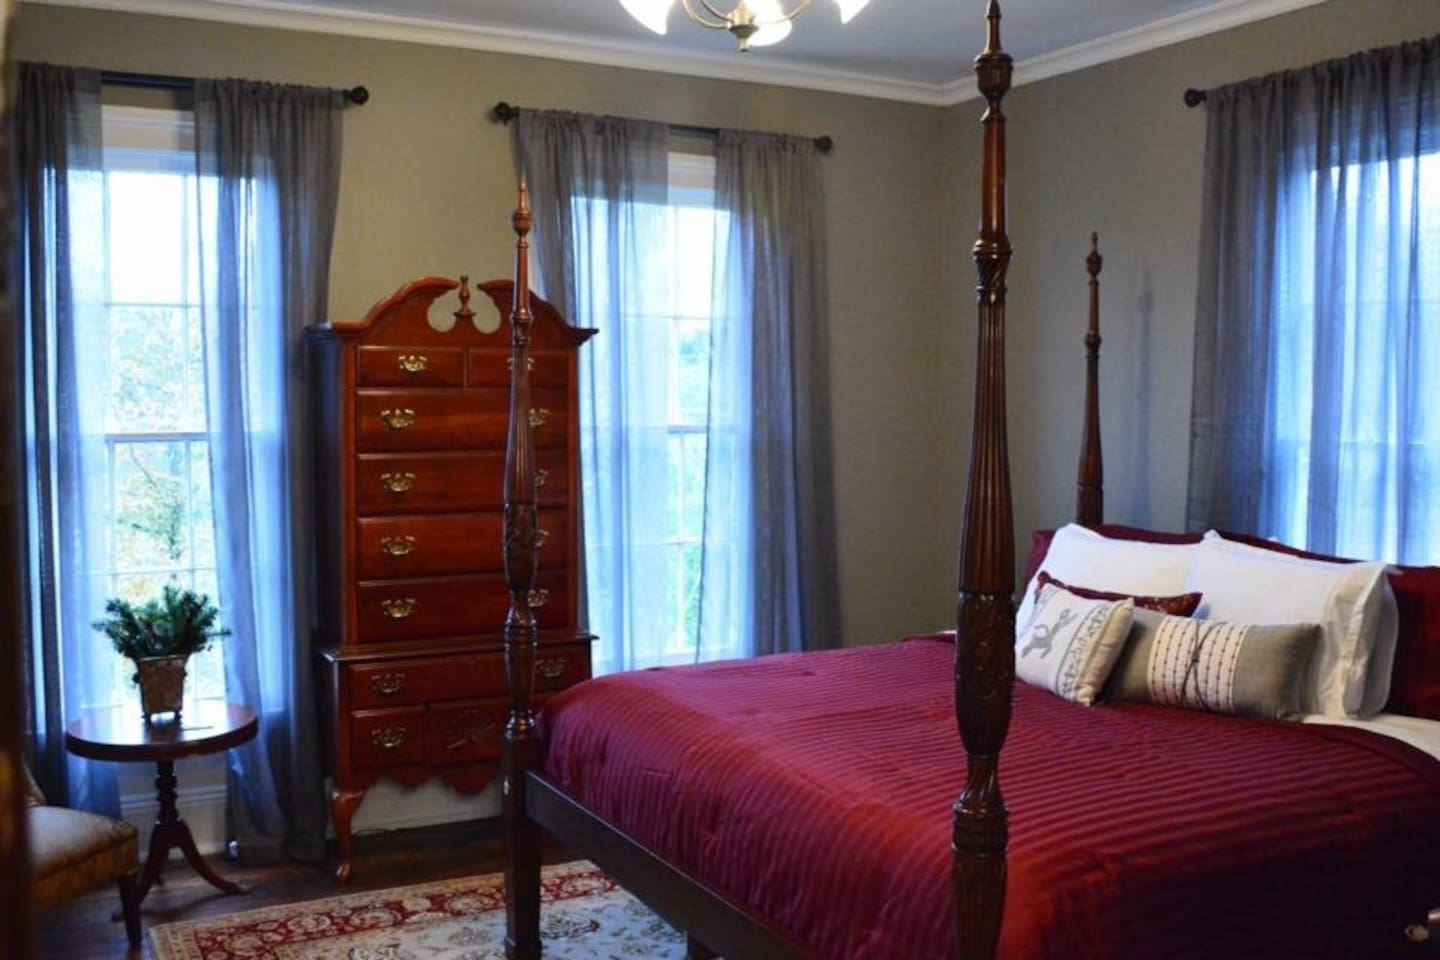 """The """"Ruby Room"""" has a king-size 4- poster rice bed, WiFi, cable, flatscreen tv, and access to bath with claw foot tub/shower. This room is on the second floor."""